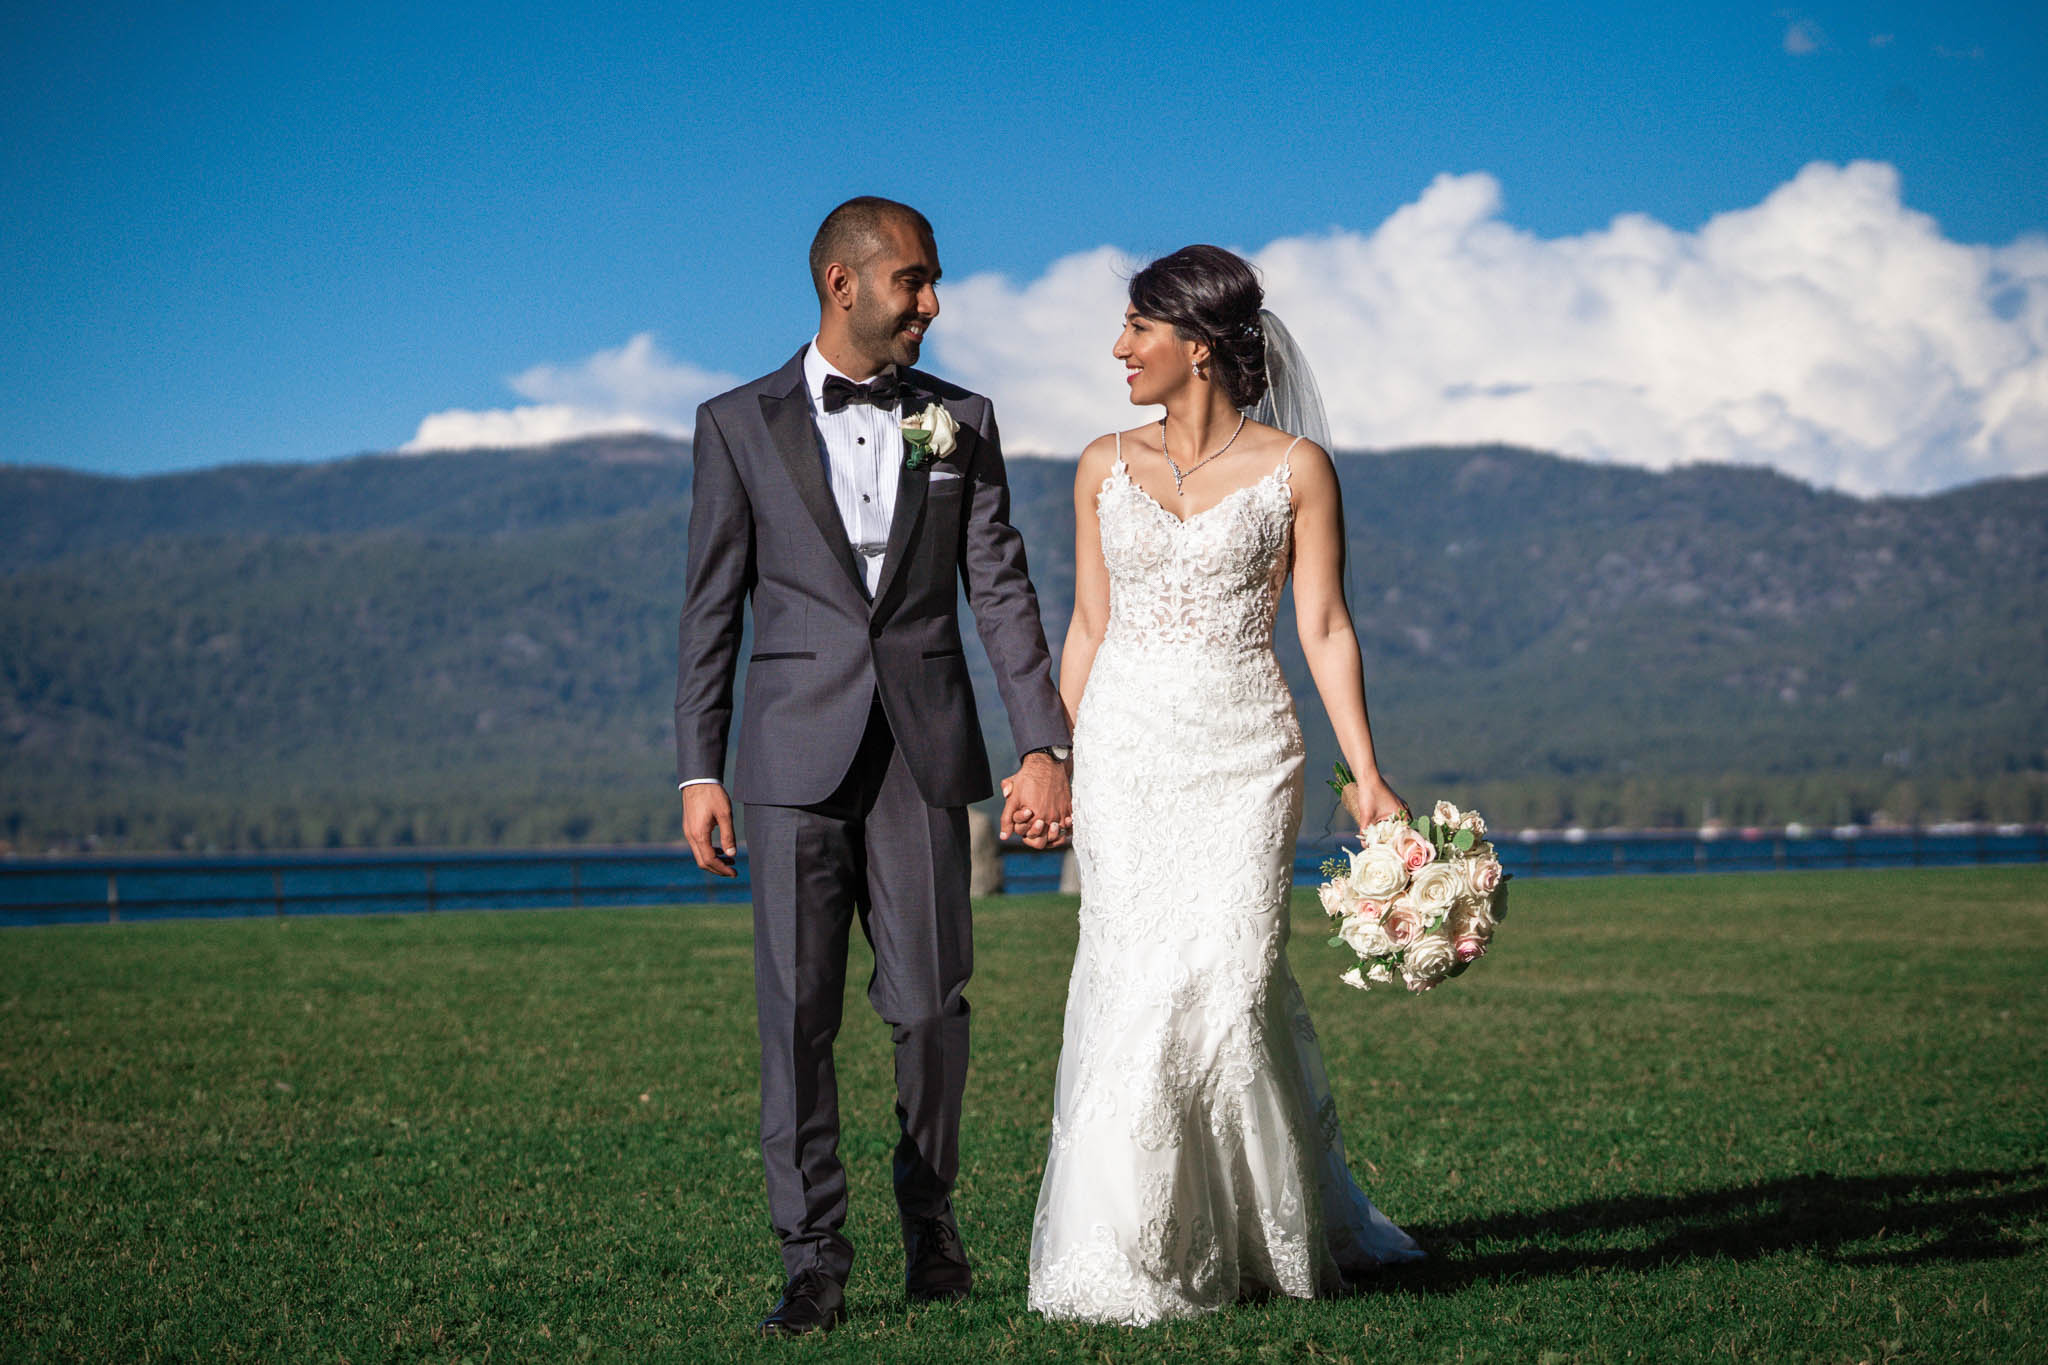 Bride and groom hold each other in front of a mountain backdrop in South Lake Tahoe